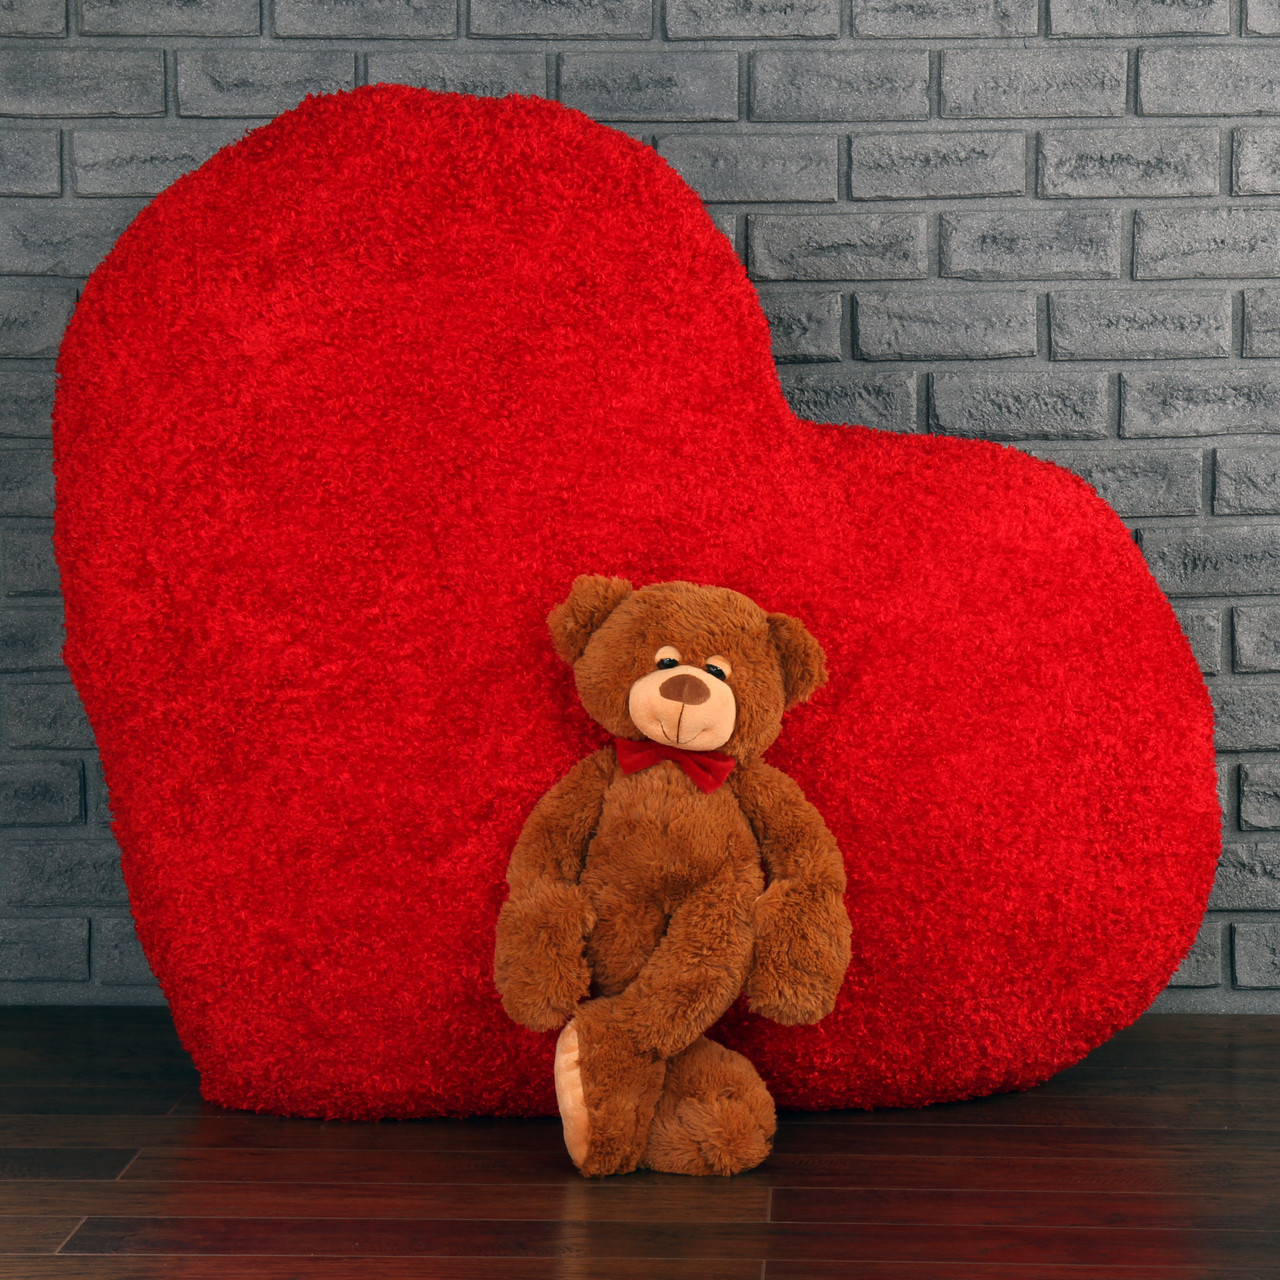 56in Massive Heart Body Pillow with 24in Mittens Red Bow